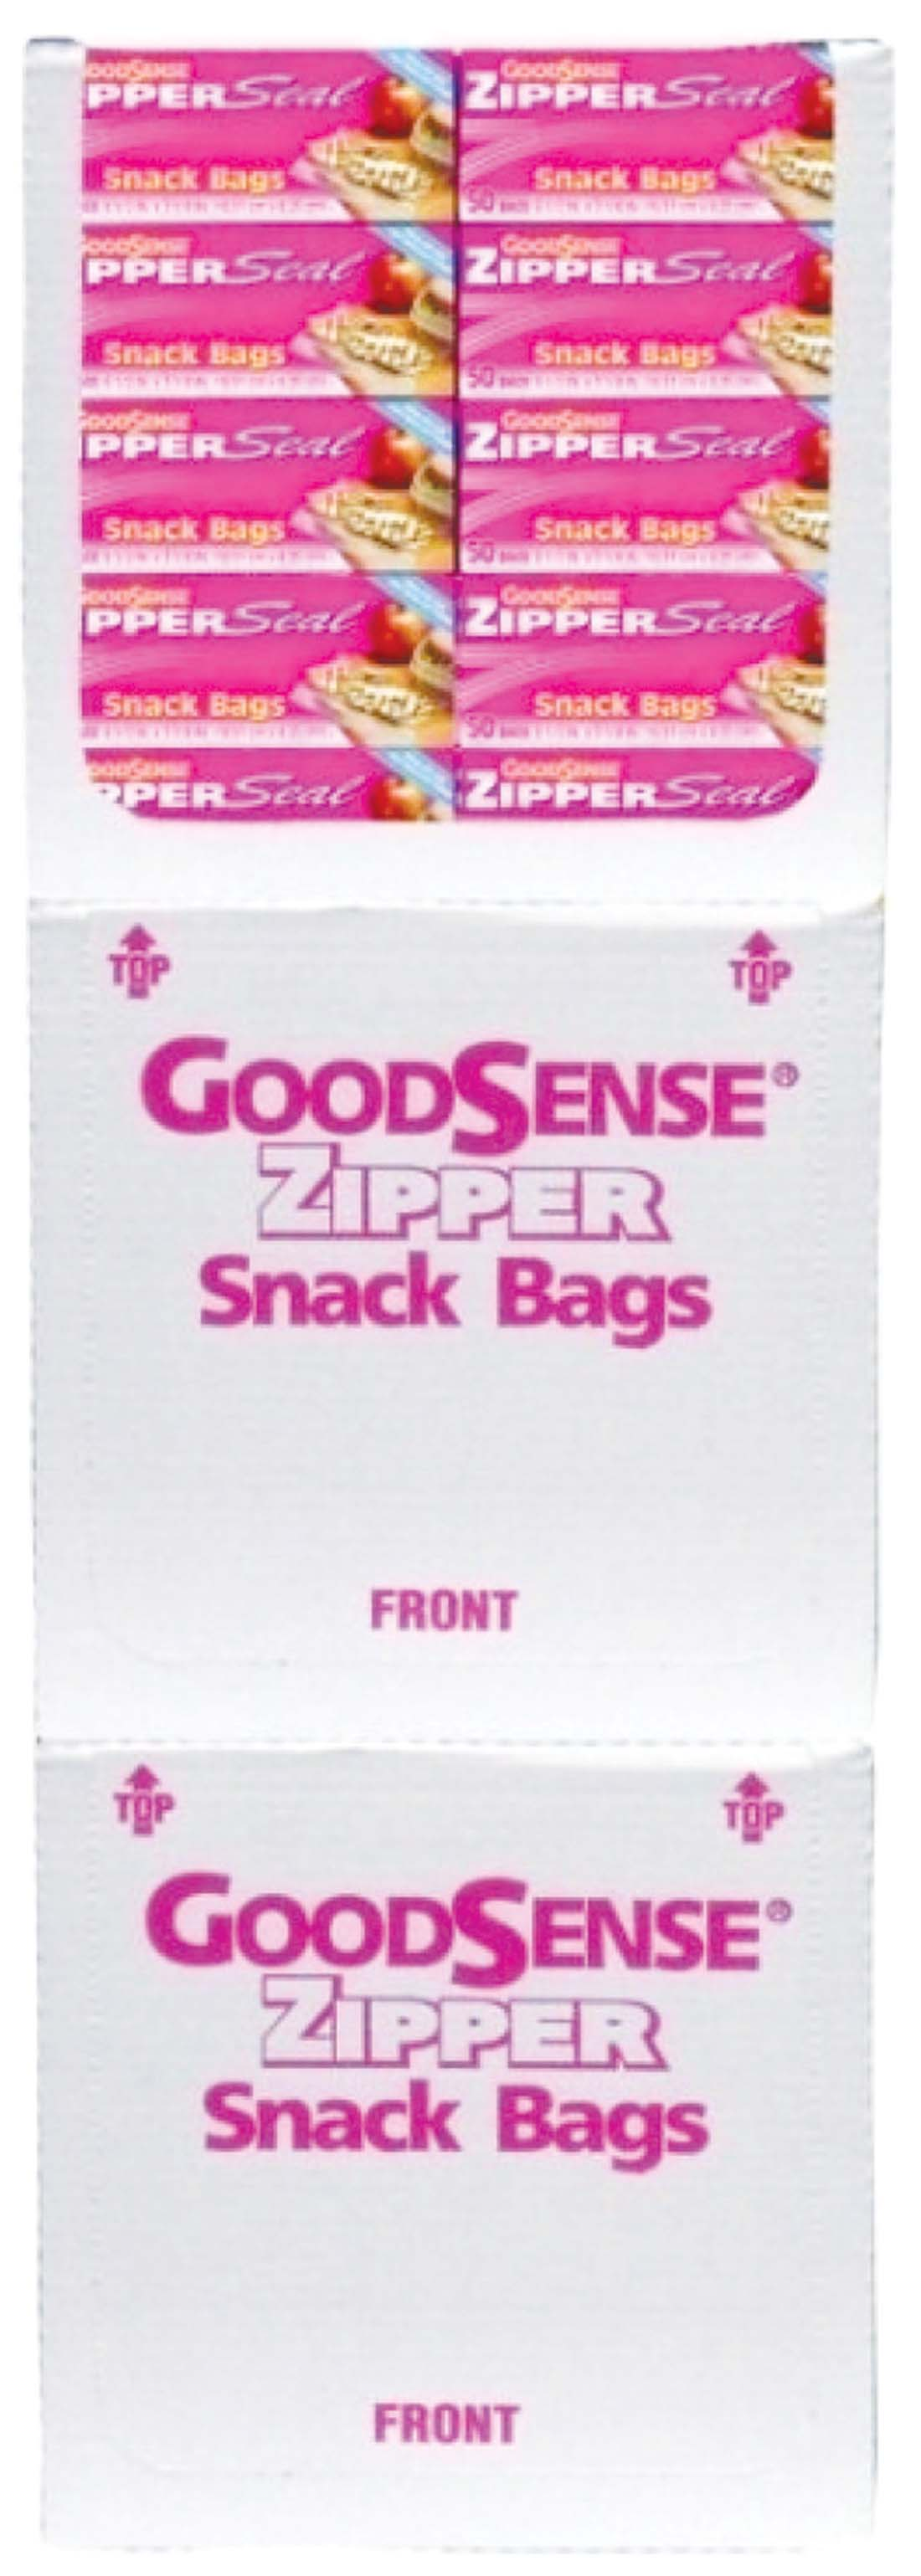 View GOOD SENSE SNACK BAG 50 COUNT 6 1/2 X 3 1/4 INCHES ZIPPER SEAL